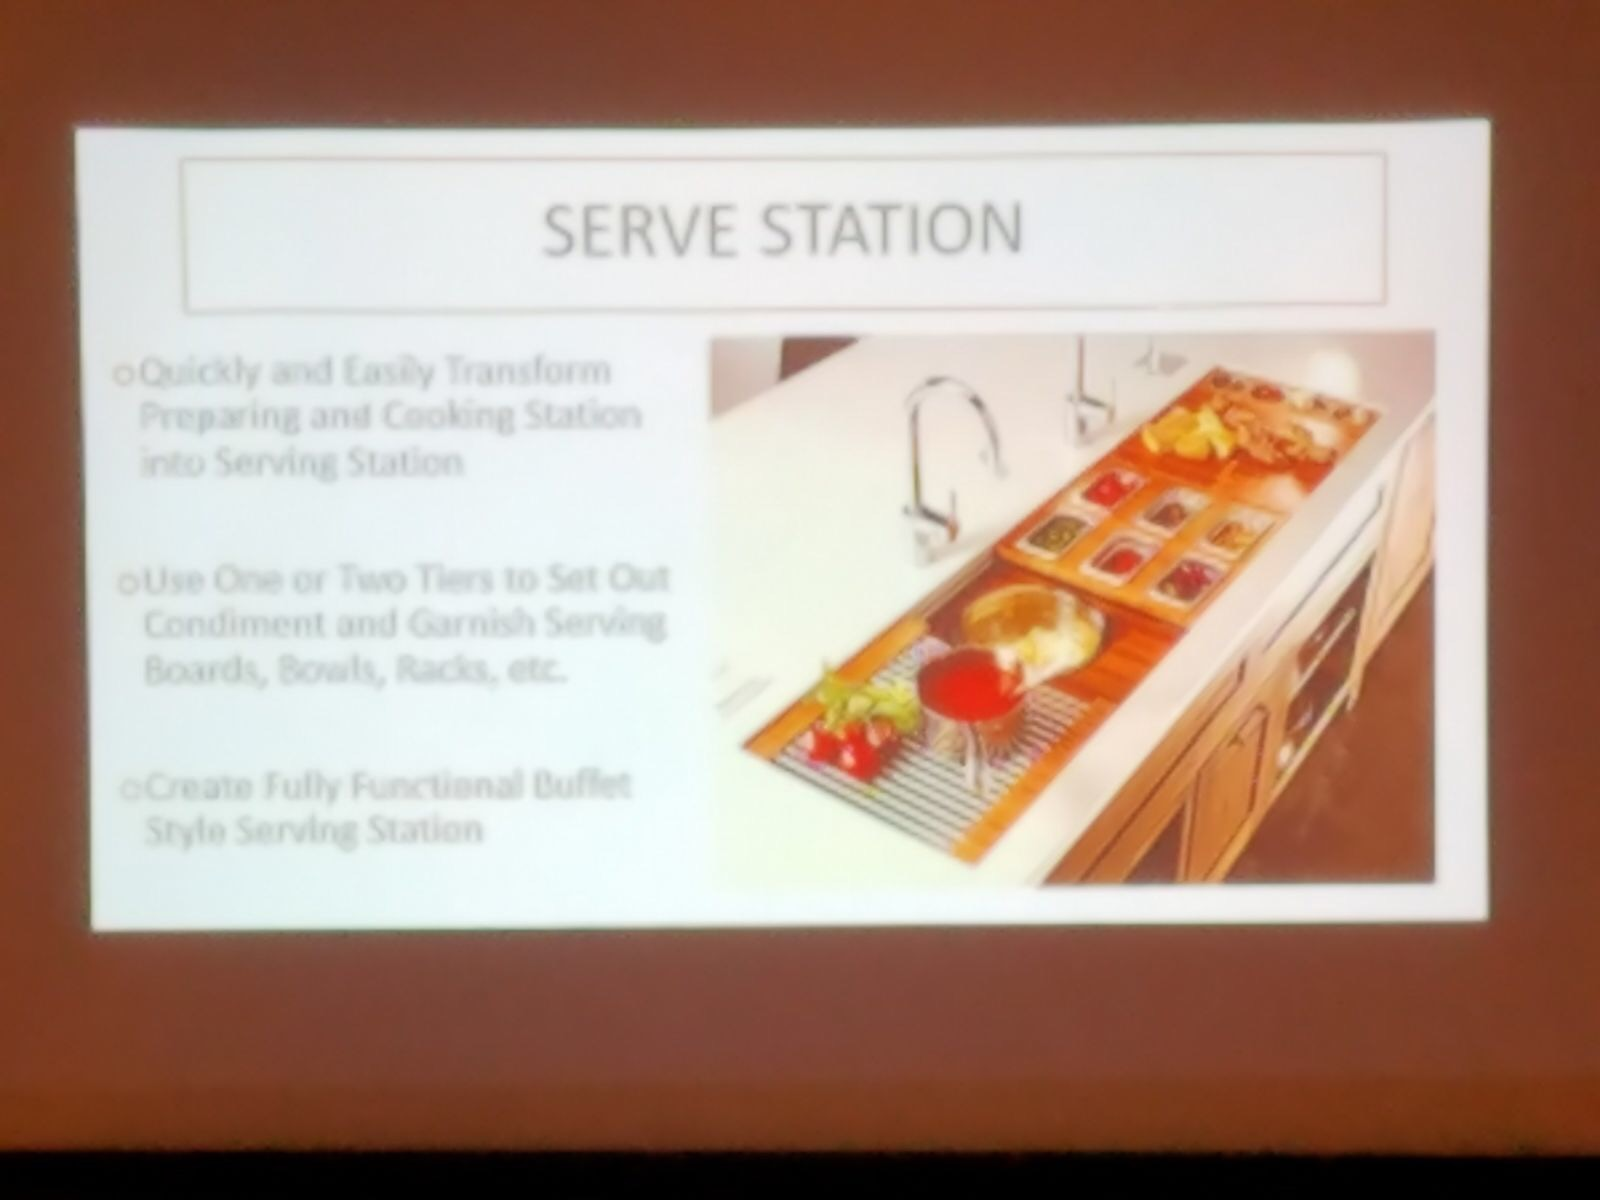 Galley Workstation presentation at the SEN Fall 2017 Conference